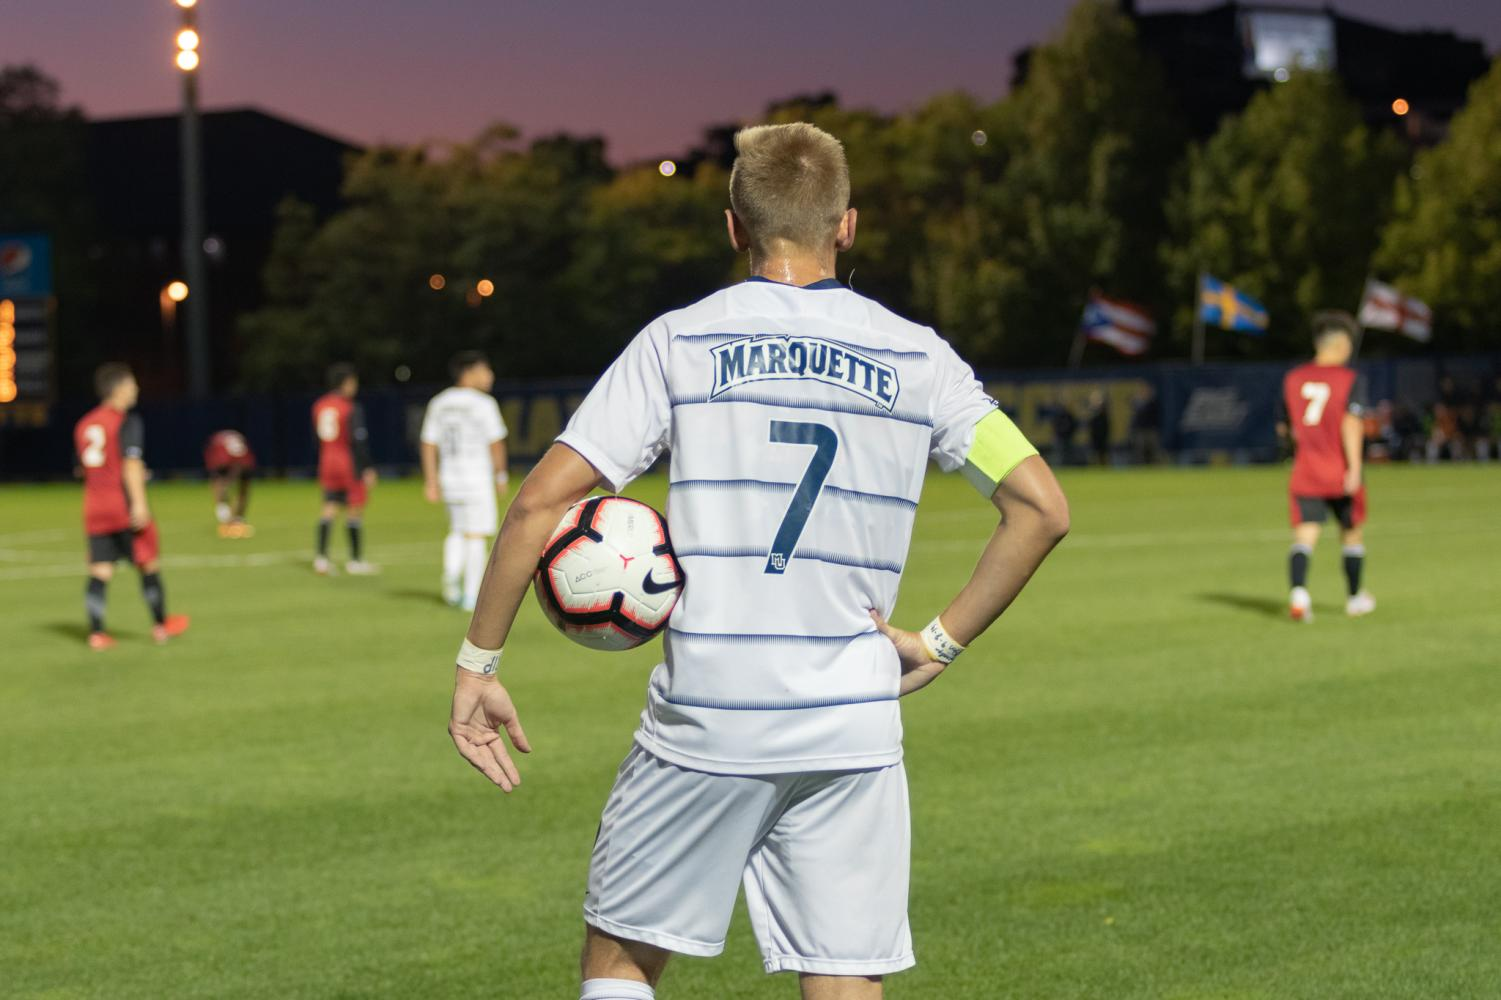 Defender Patrick Seagrist (7) was a two-time All-BIG EAST First Team selection and led Marquette and the conference with seven assists.